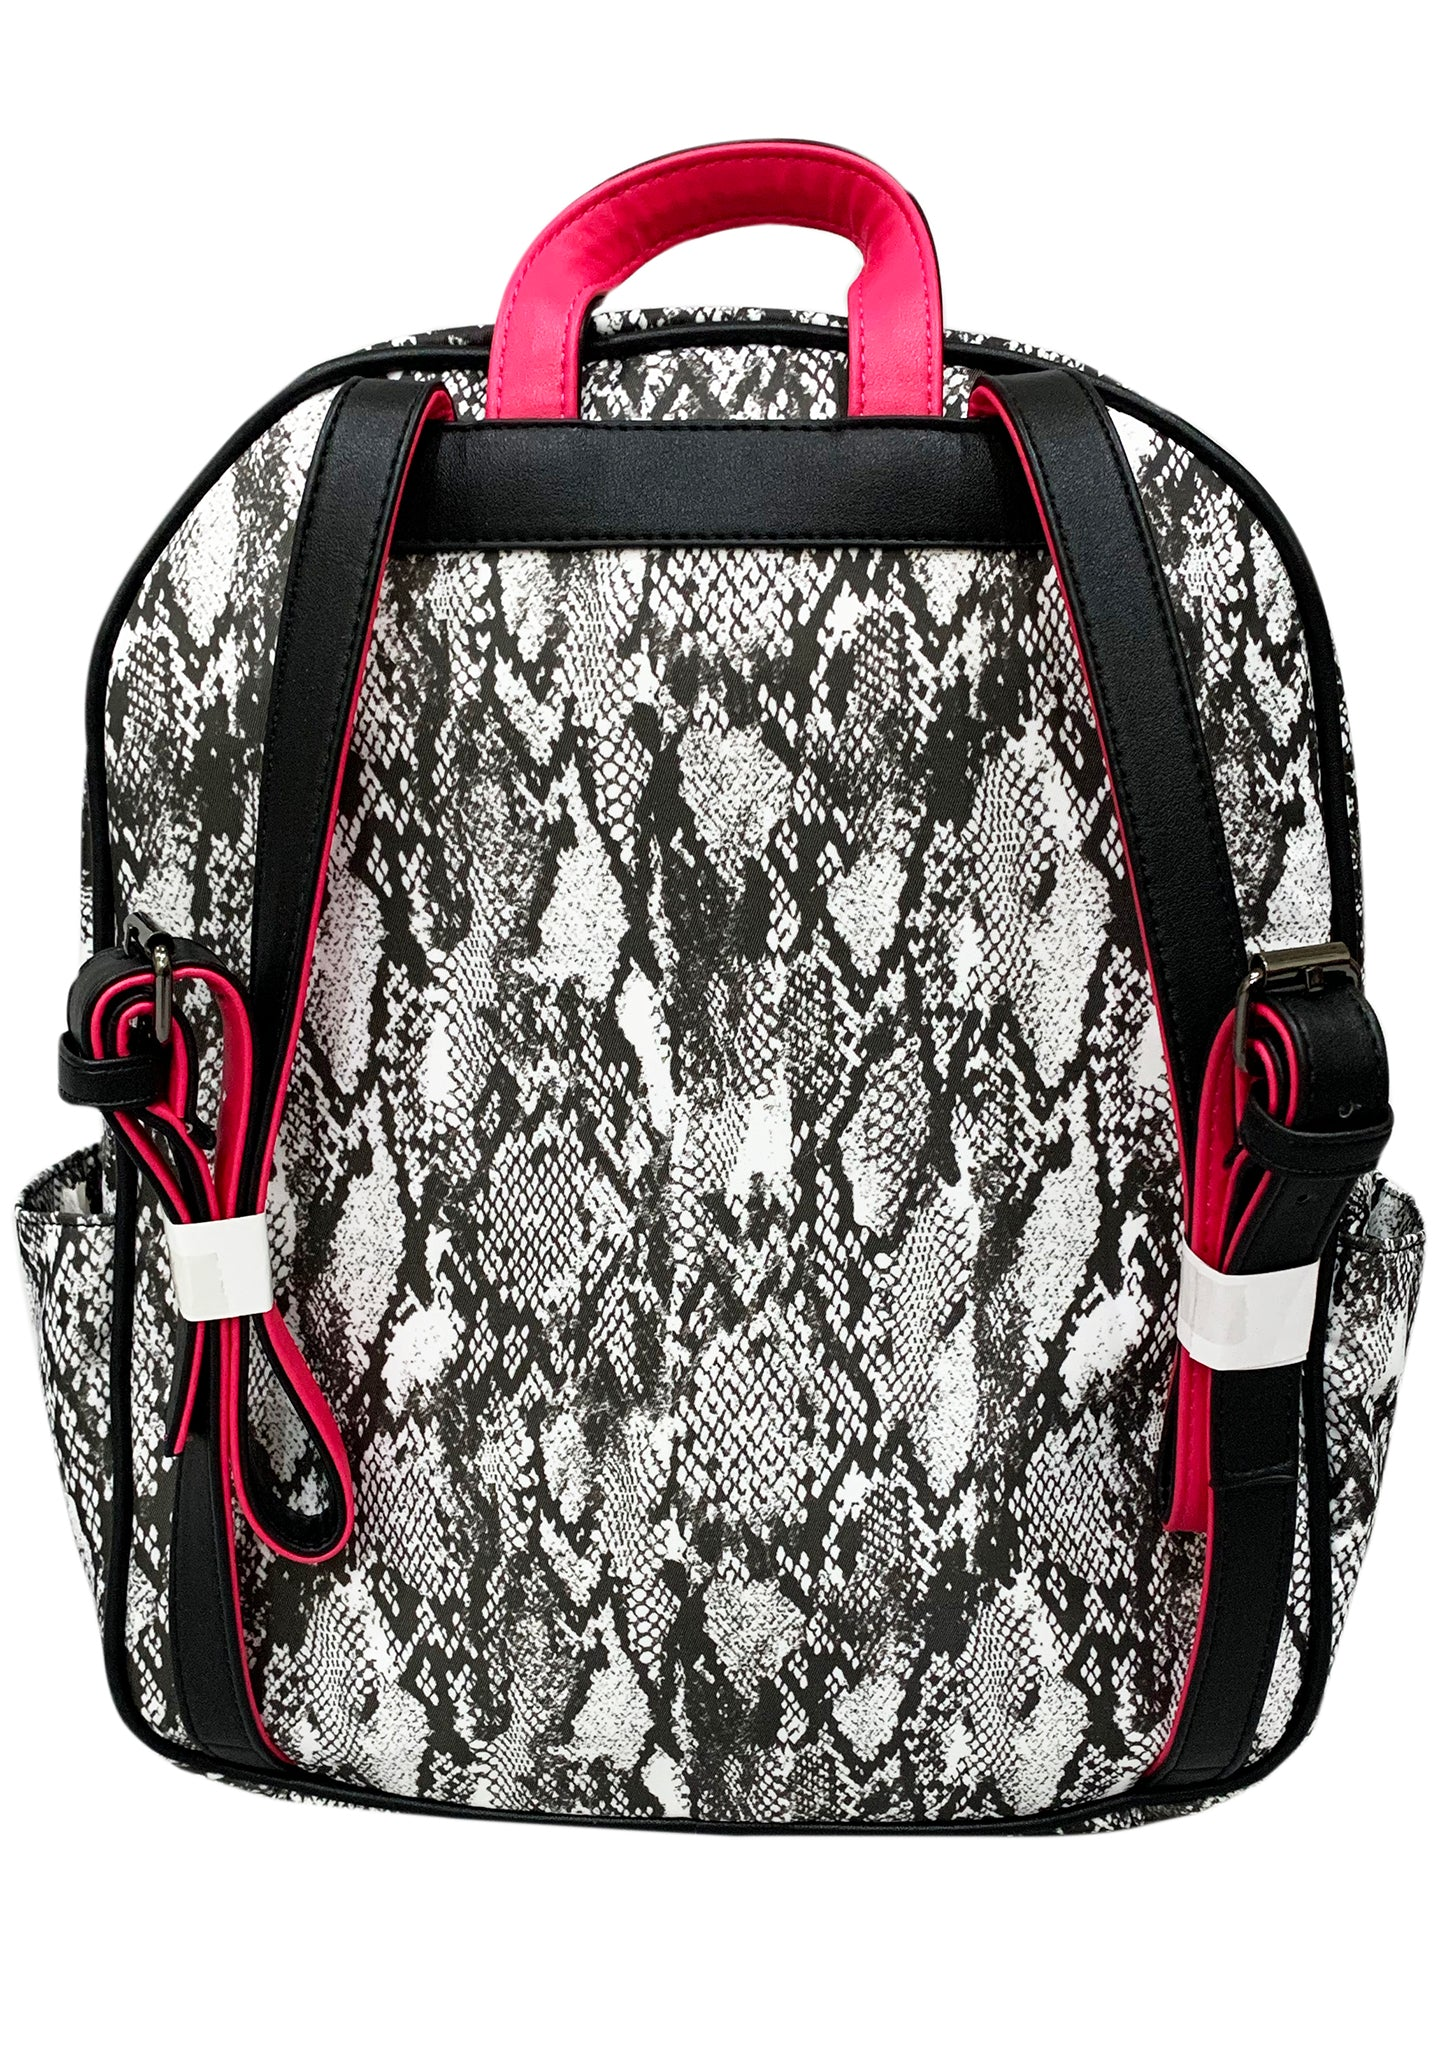 Gone Wild Backpack in Black and White Snake